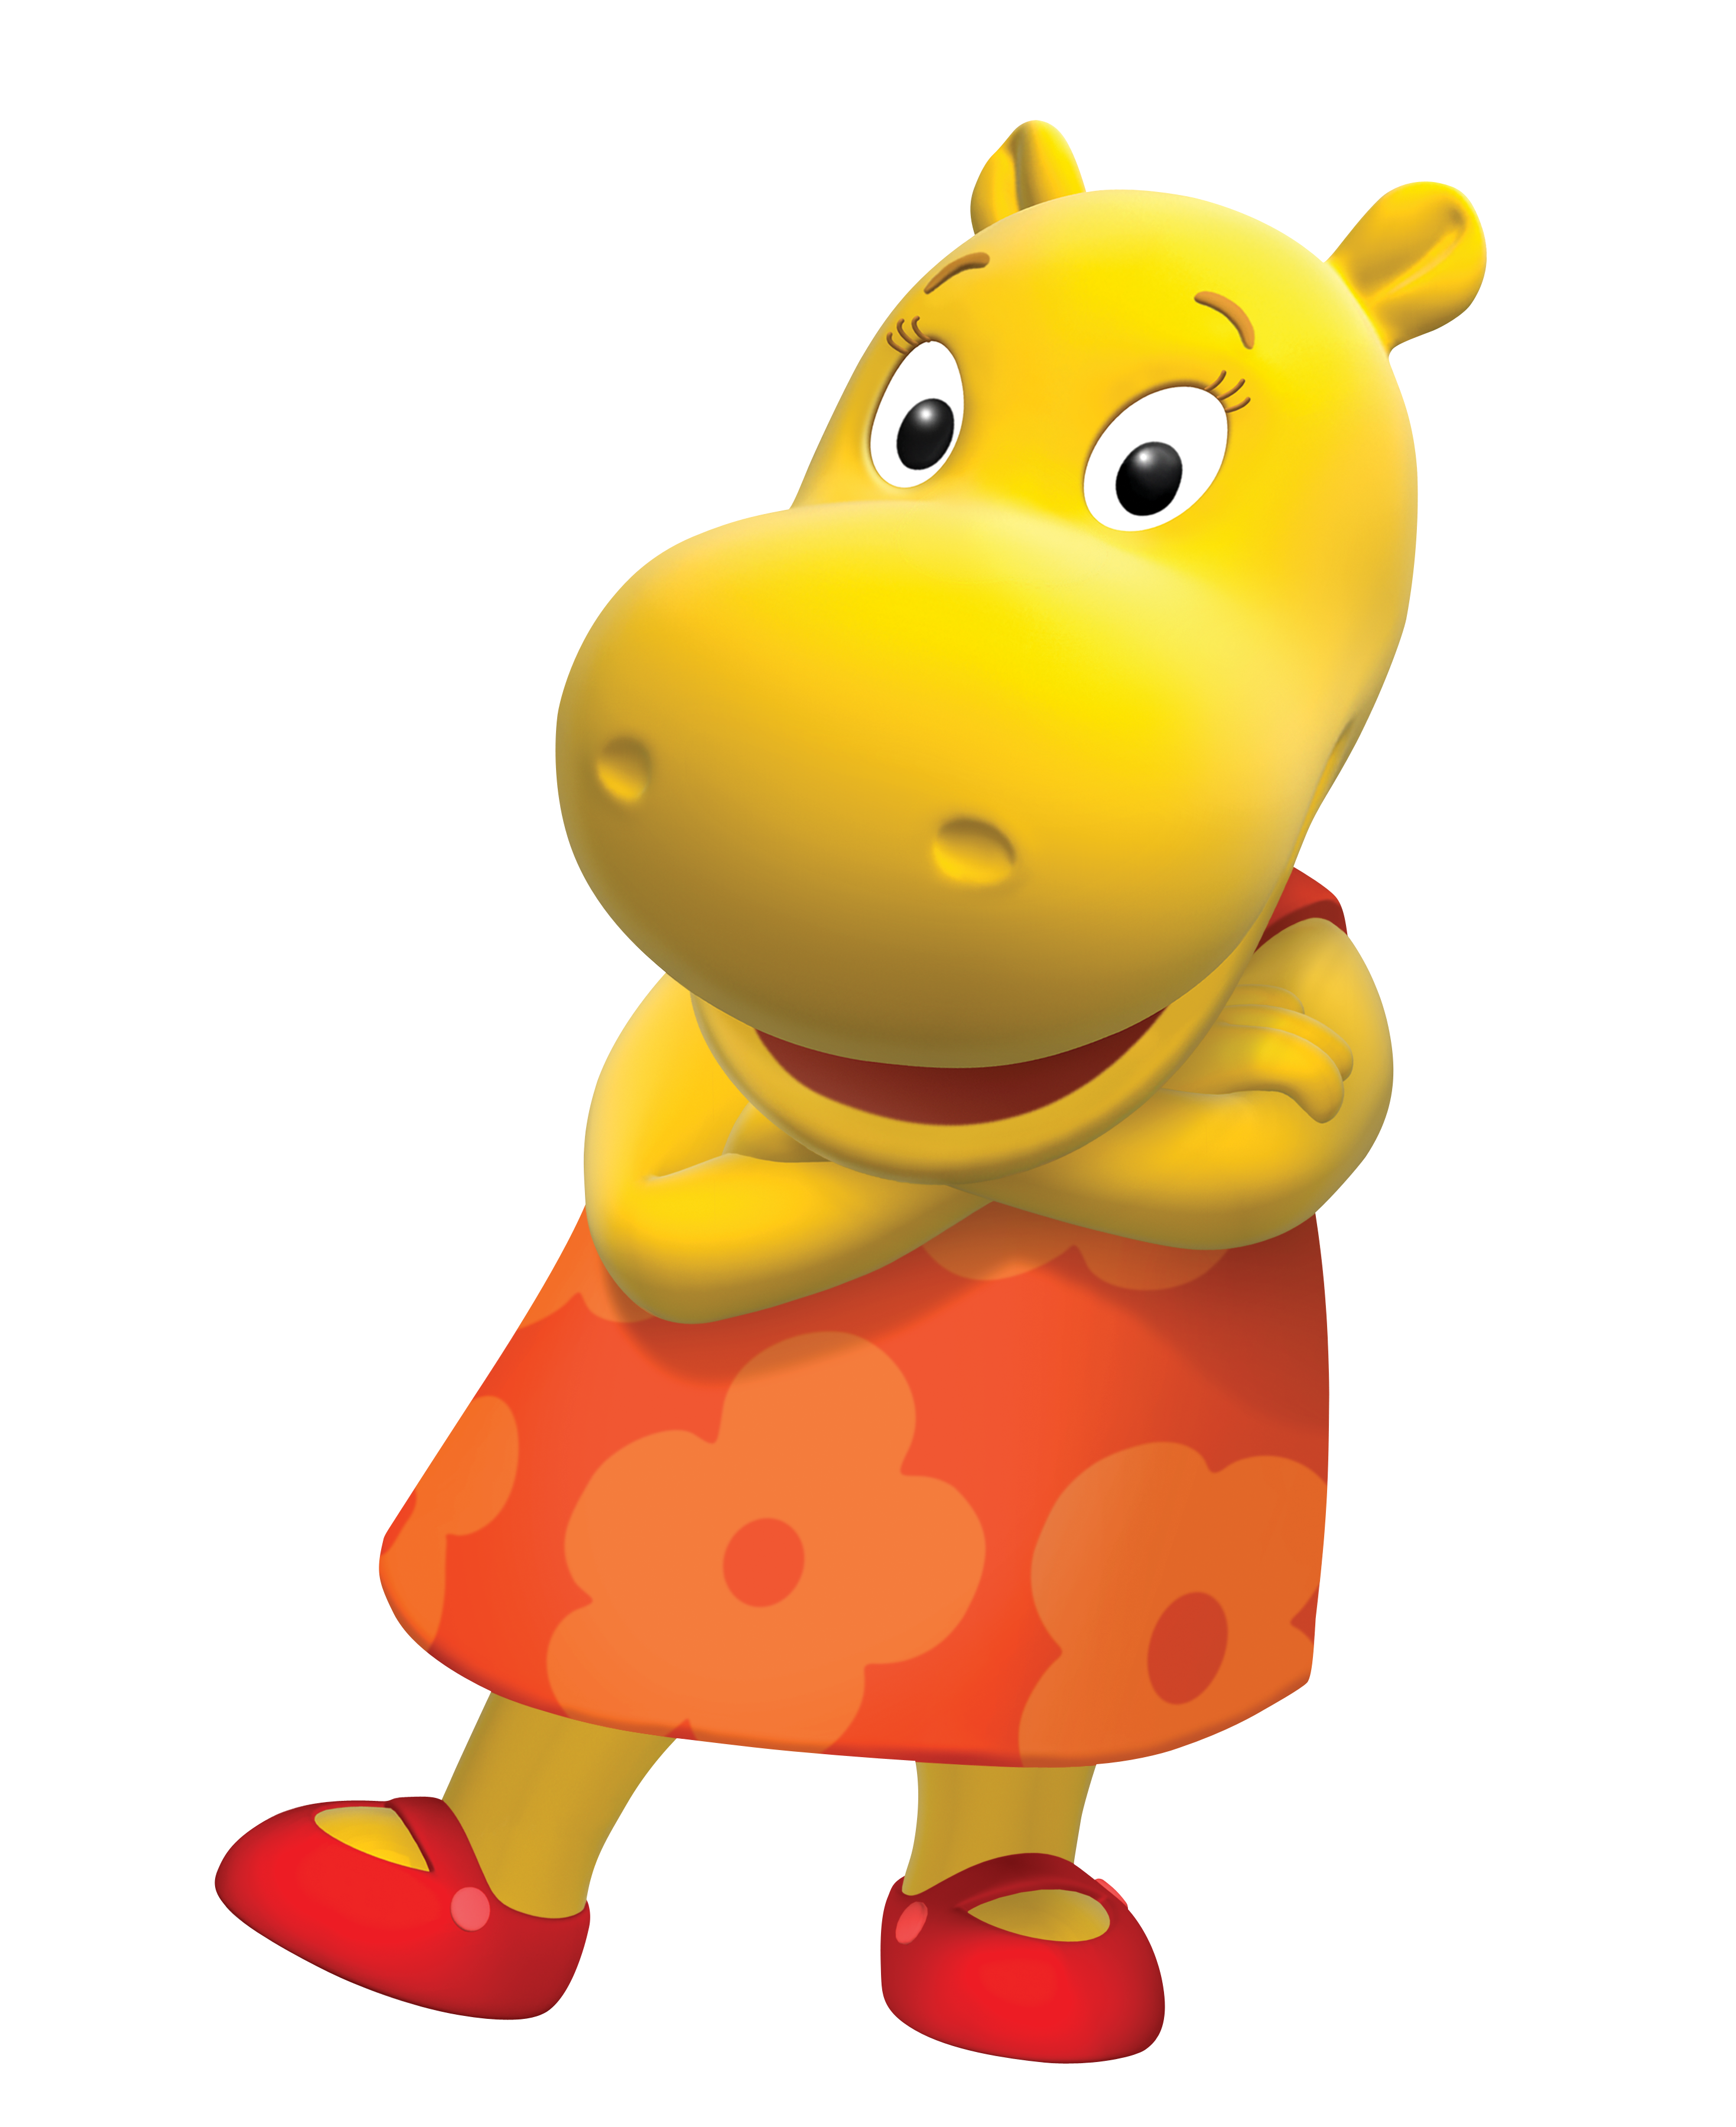 The Backyardigans Tasha Cross Armed Nickelodeon Nick Jr. Character Image